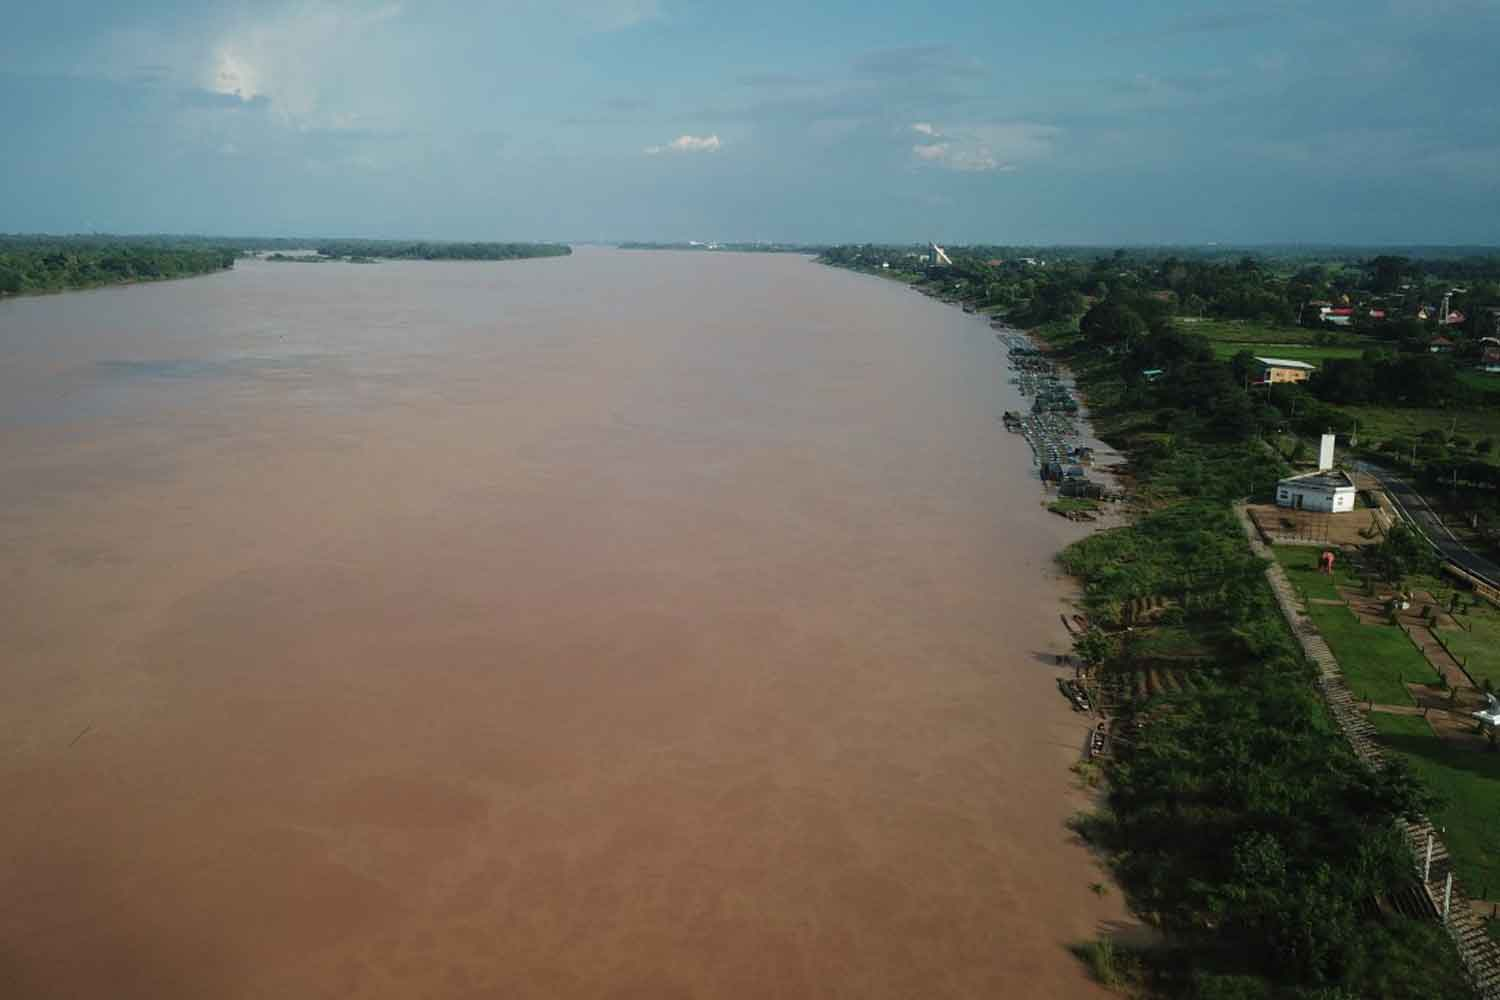 The Mekong river flows past Nakhon Phanom township (right) on Wednesday. (Photo: Pattanapong Sripiachai)